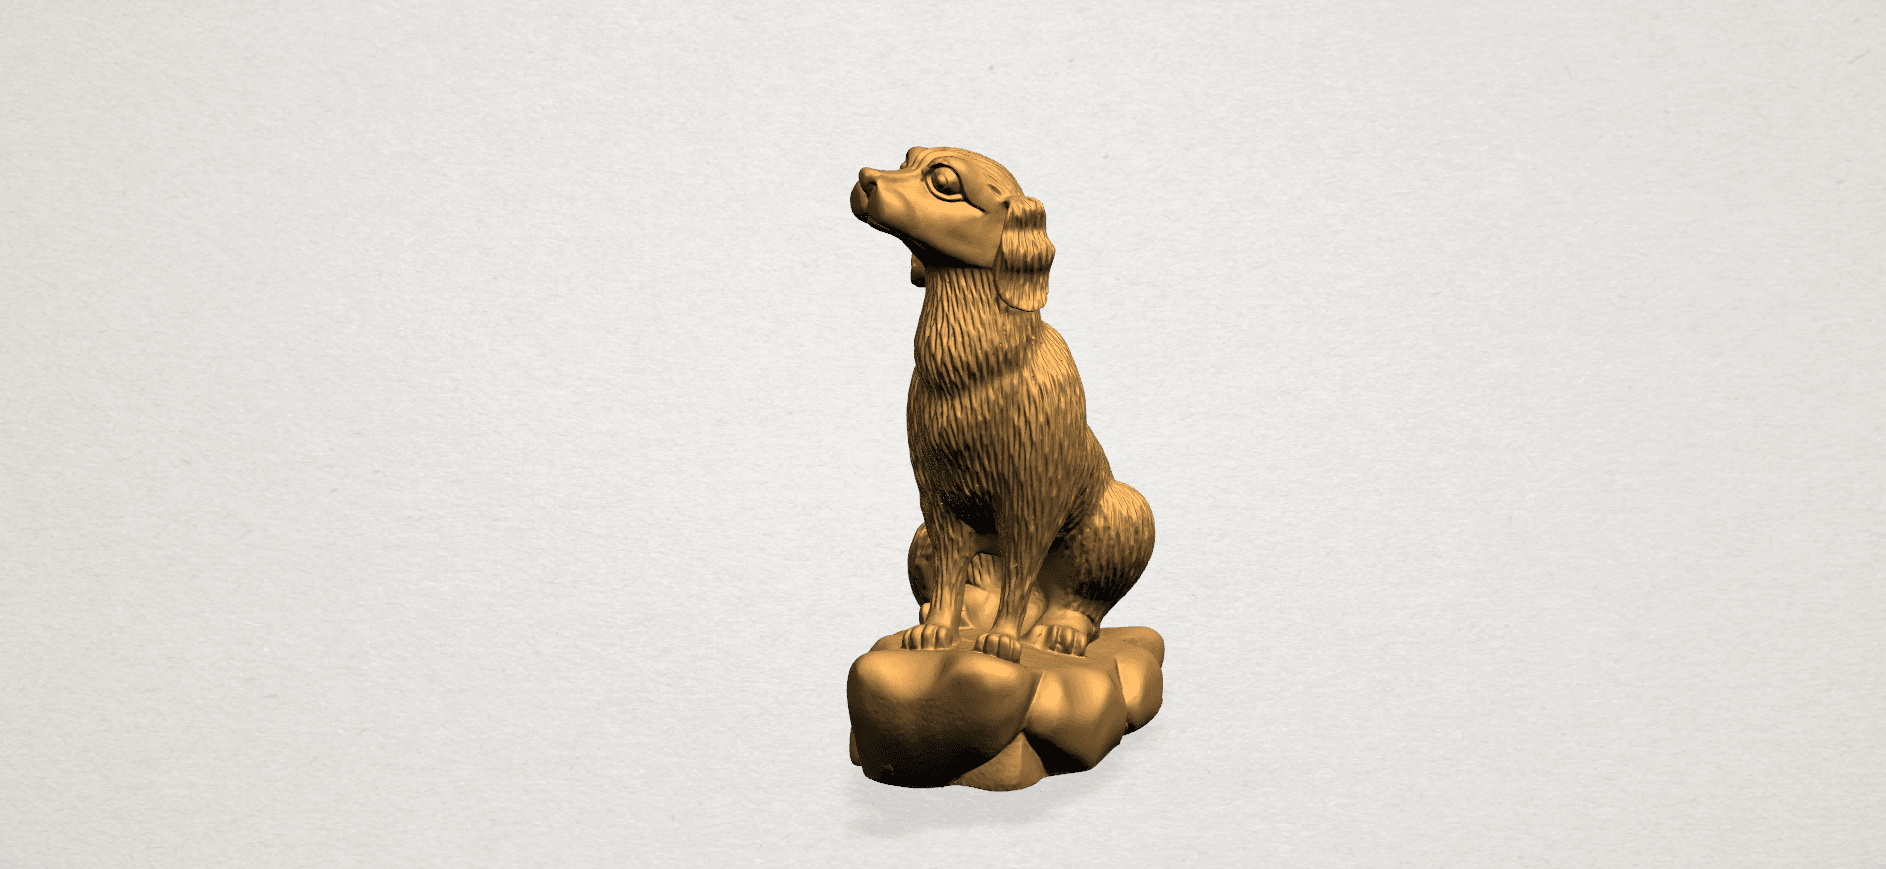 ZChinese Horoscope11-A01.png Download free STL file Chinese Horoscope 11 Dog • 3D print design, GeorgesNikkei